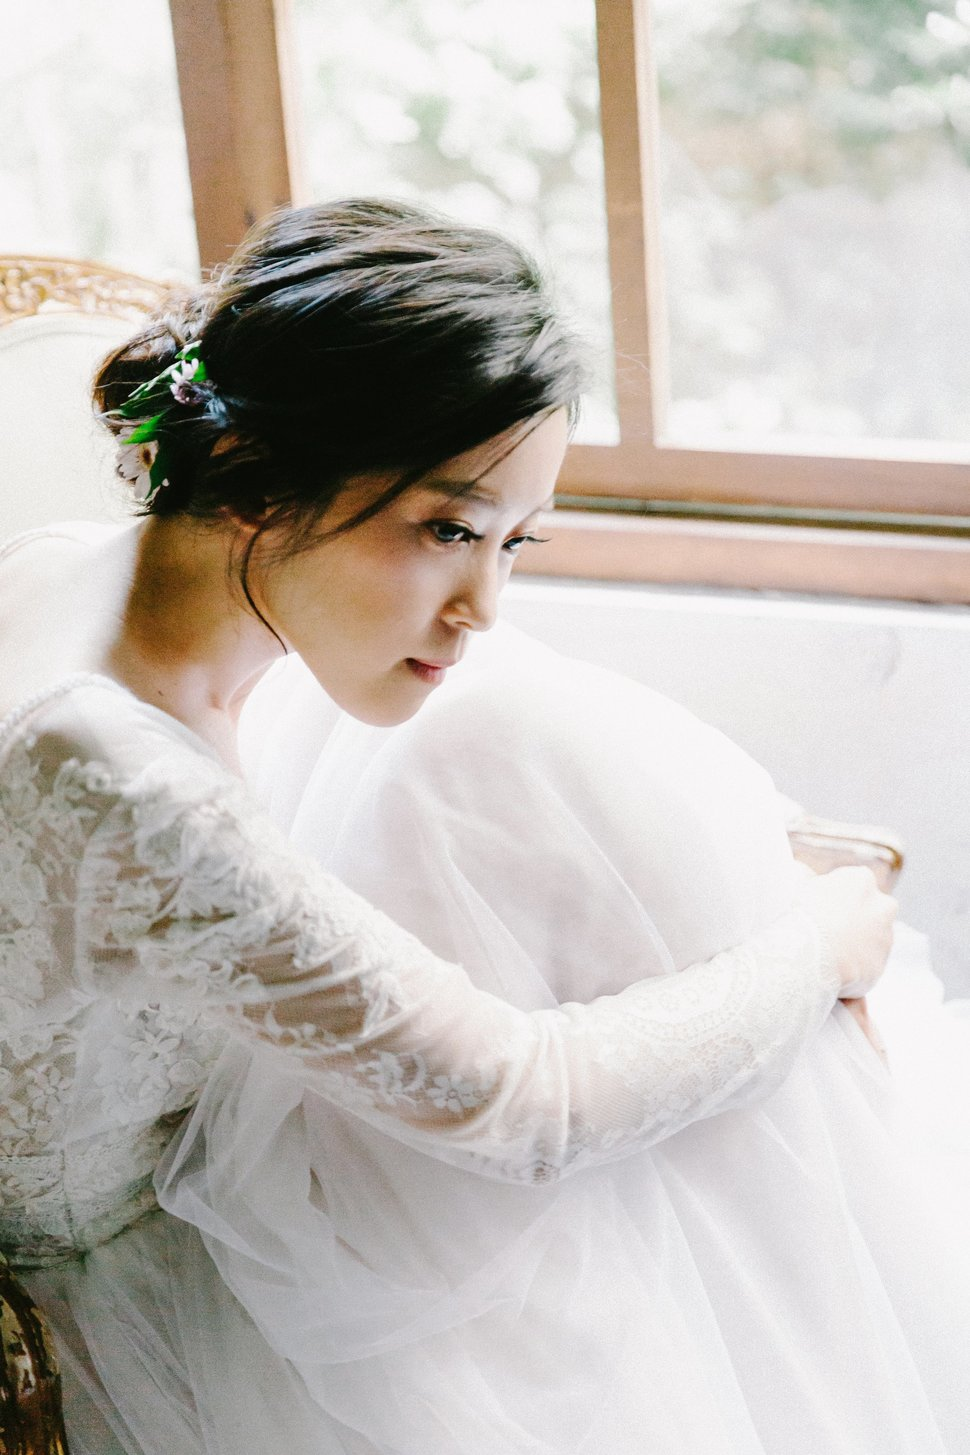 美式婚紗-自助婚紗-Amazing Grace攝影-台中婚紗- Amazing Grace Studio16 - Amazing Grace Studio《結婚吧》